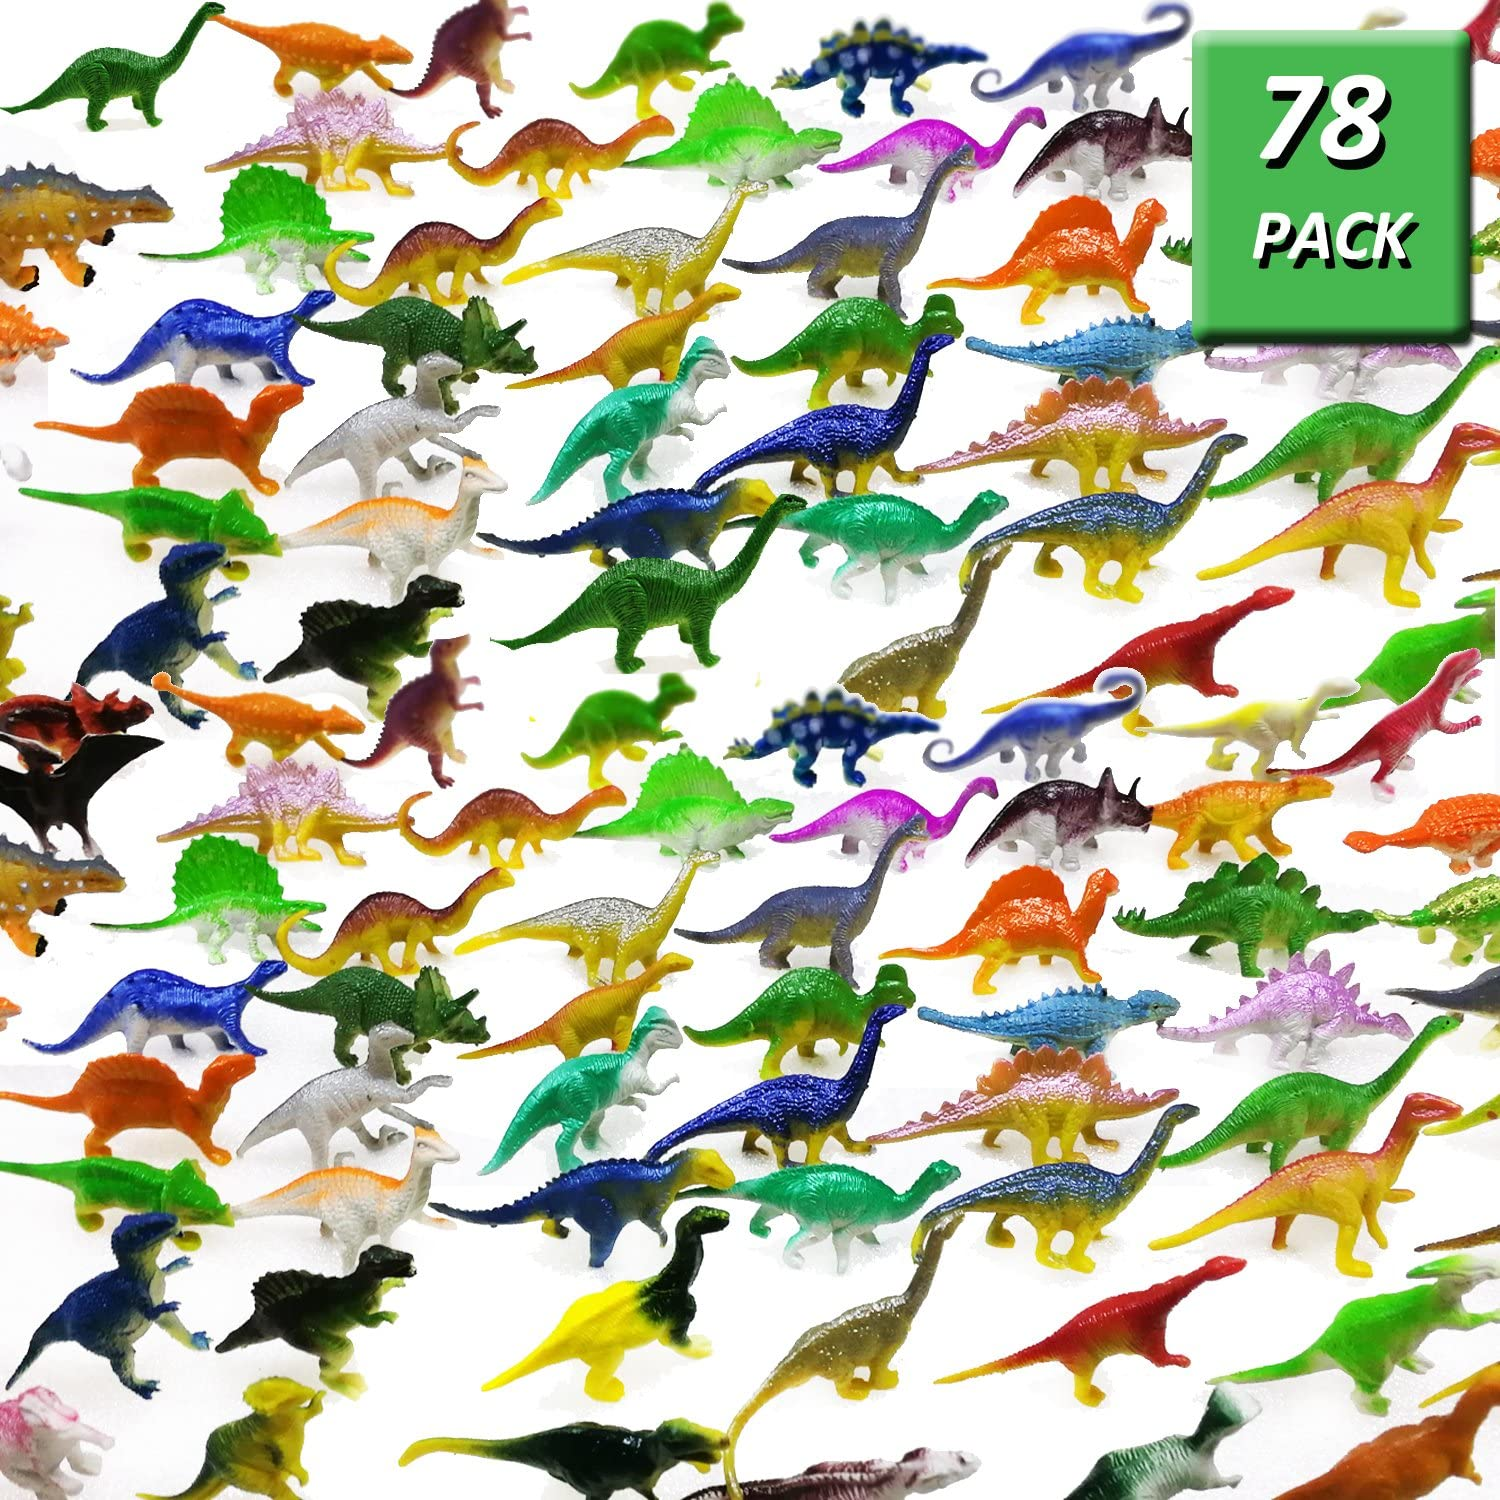 specialty shop Columbus Mall 78 Pack Mini Dinosaur Figure Set for Plastic Toys Toy